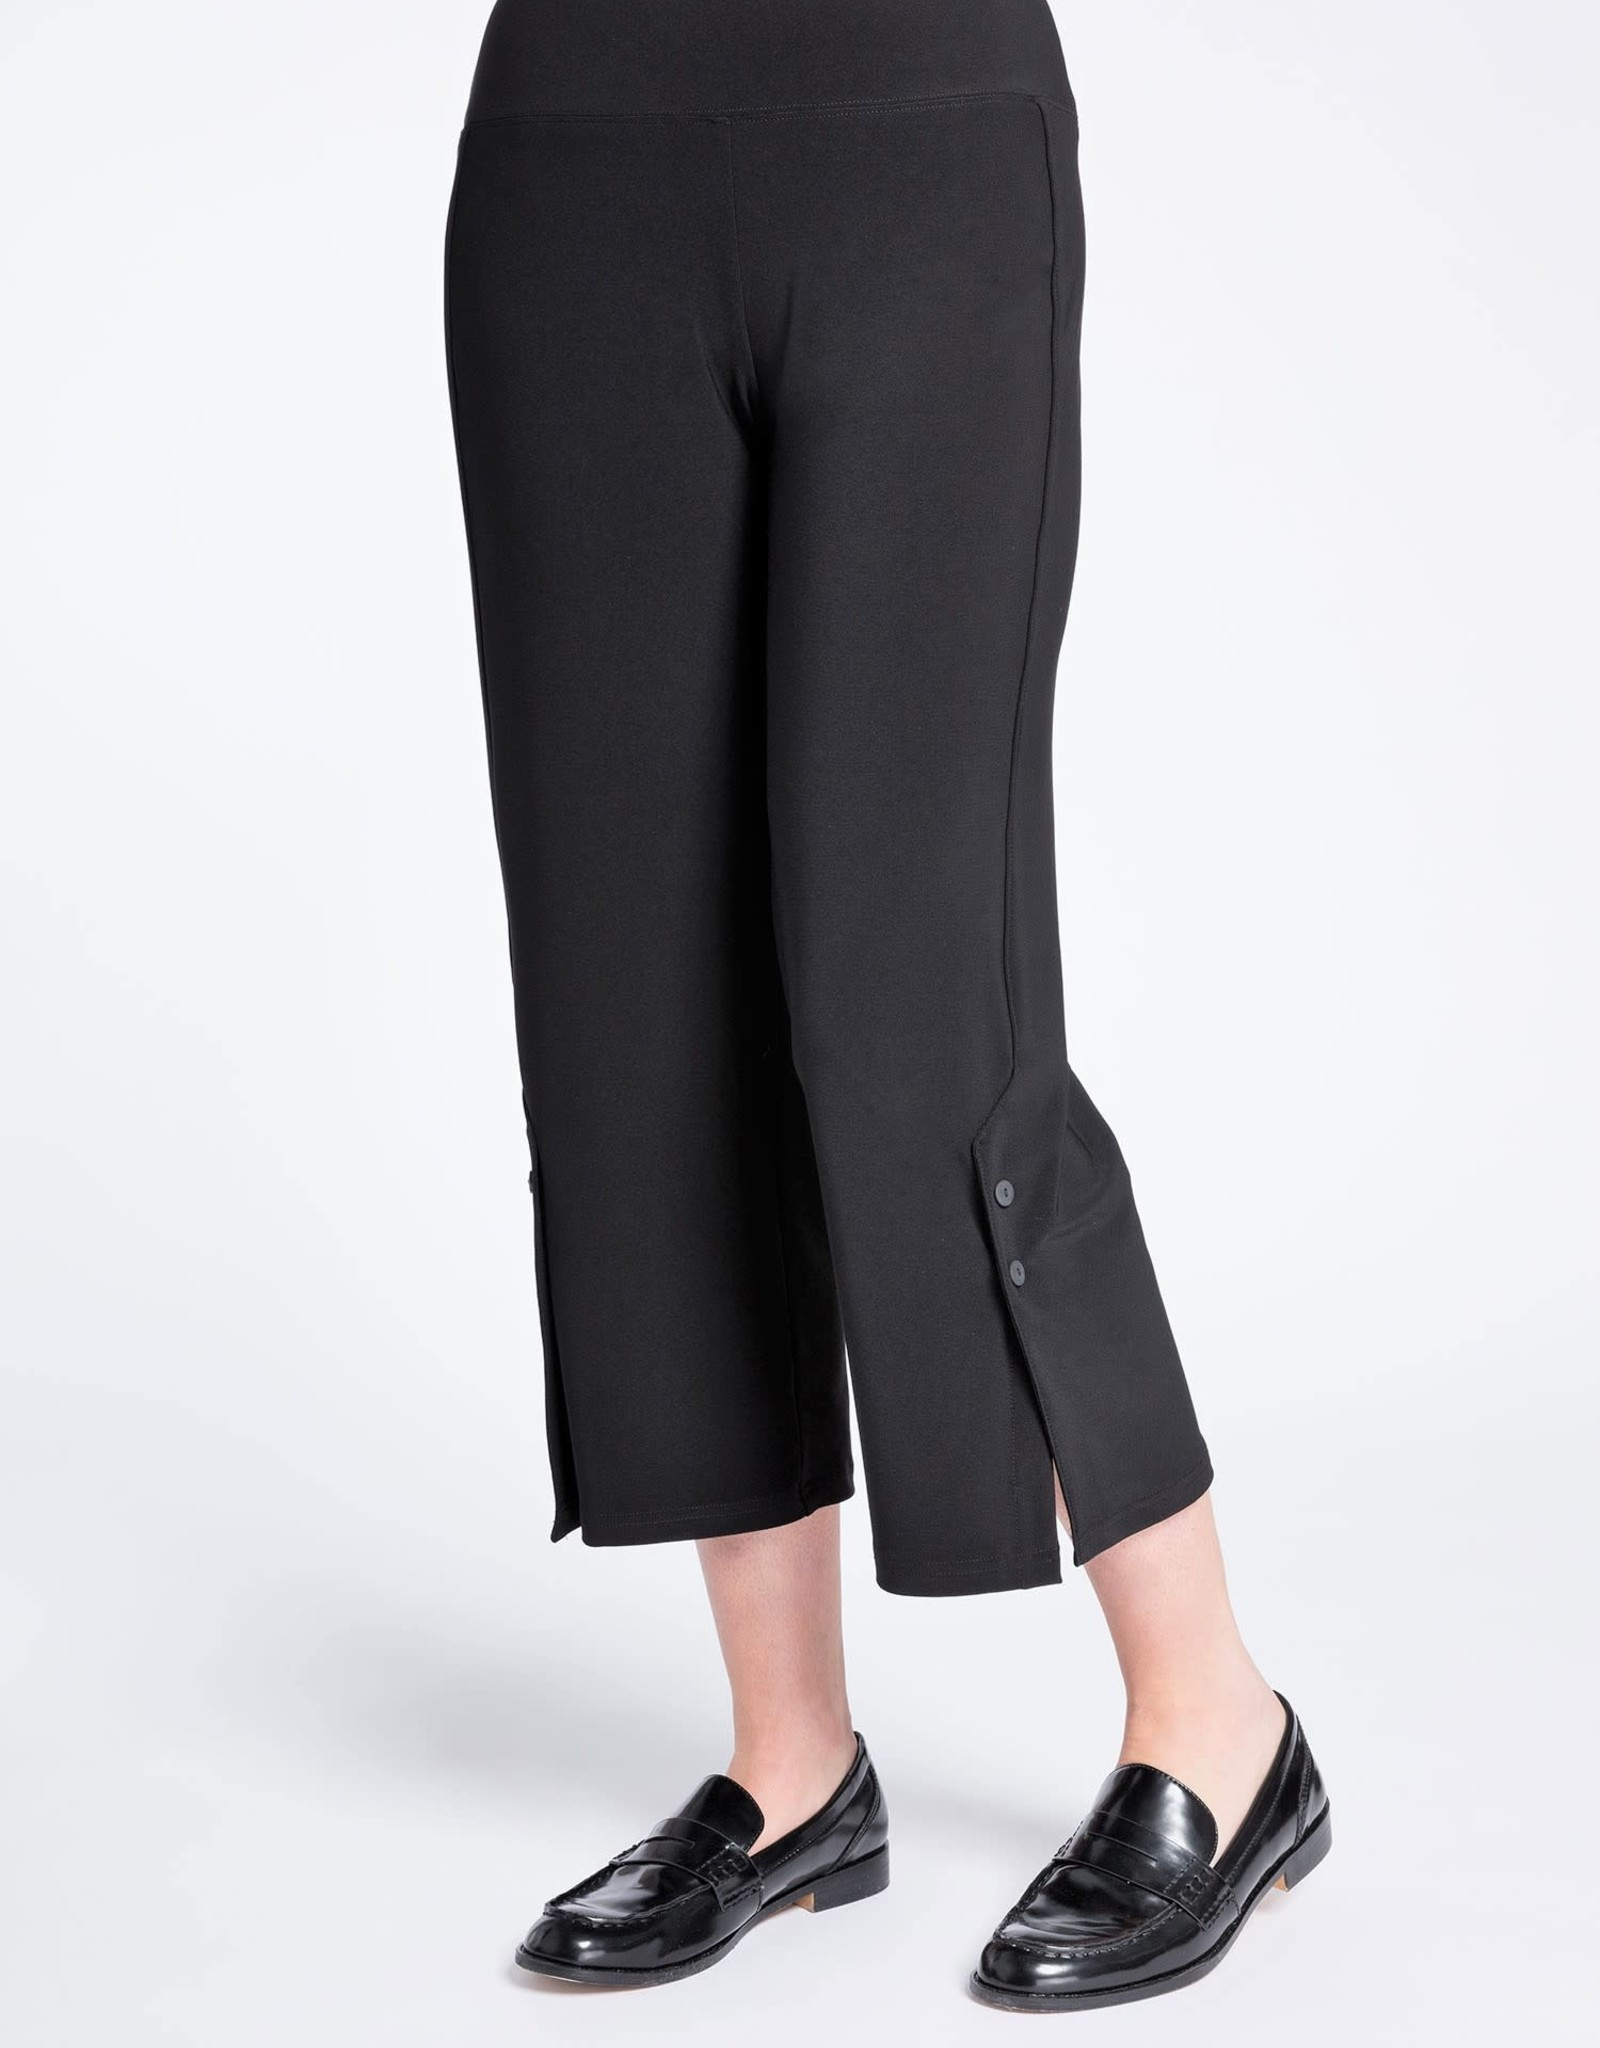 Sympli Icon Cocktail Pant - Size 6 (Consignment)